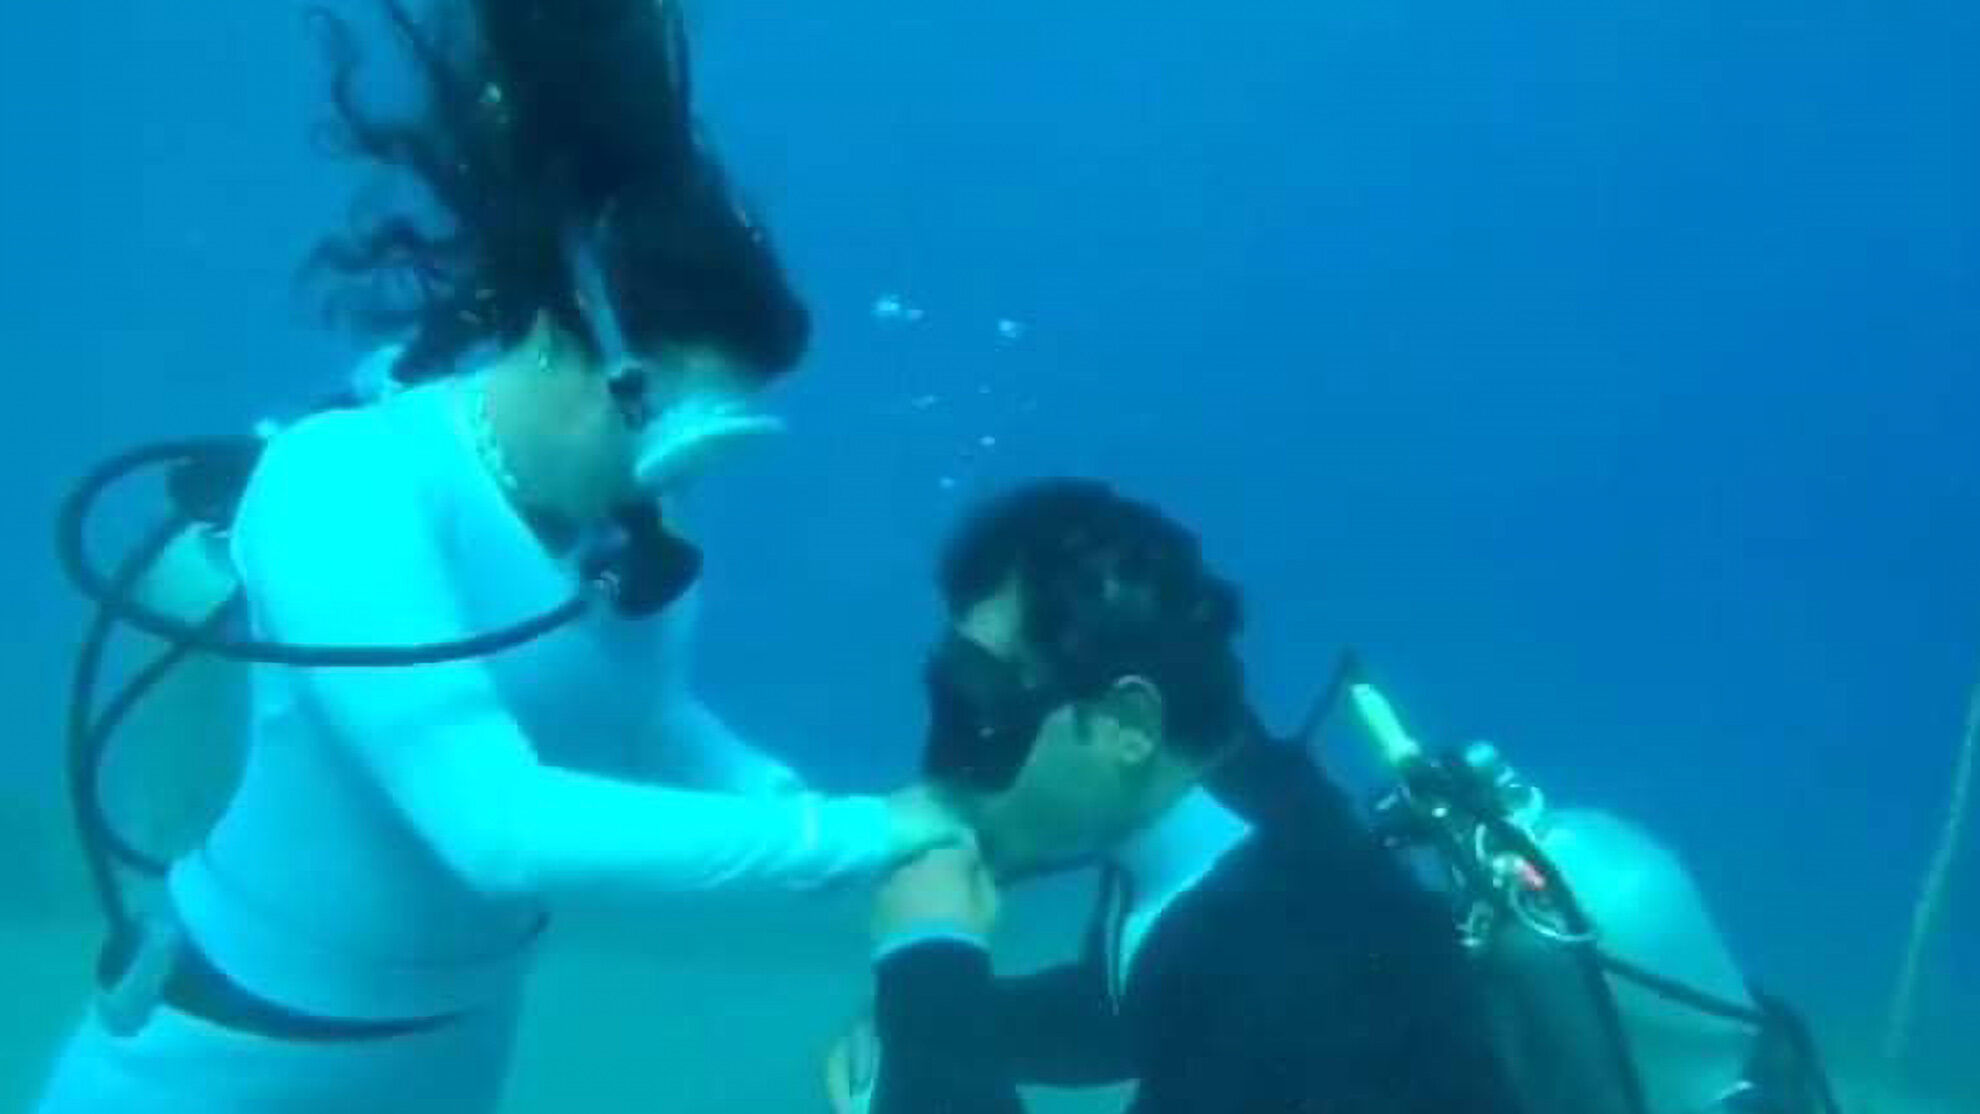 Taking the Plunge: Champion Diver Proposes Underwater, With Social Distance